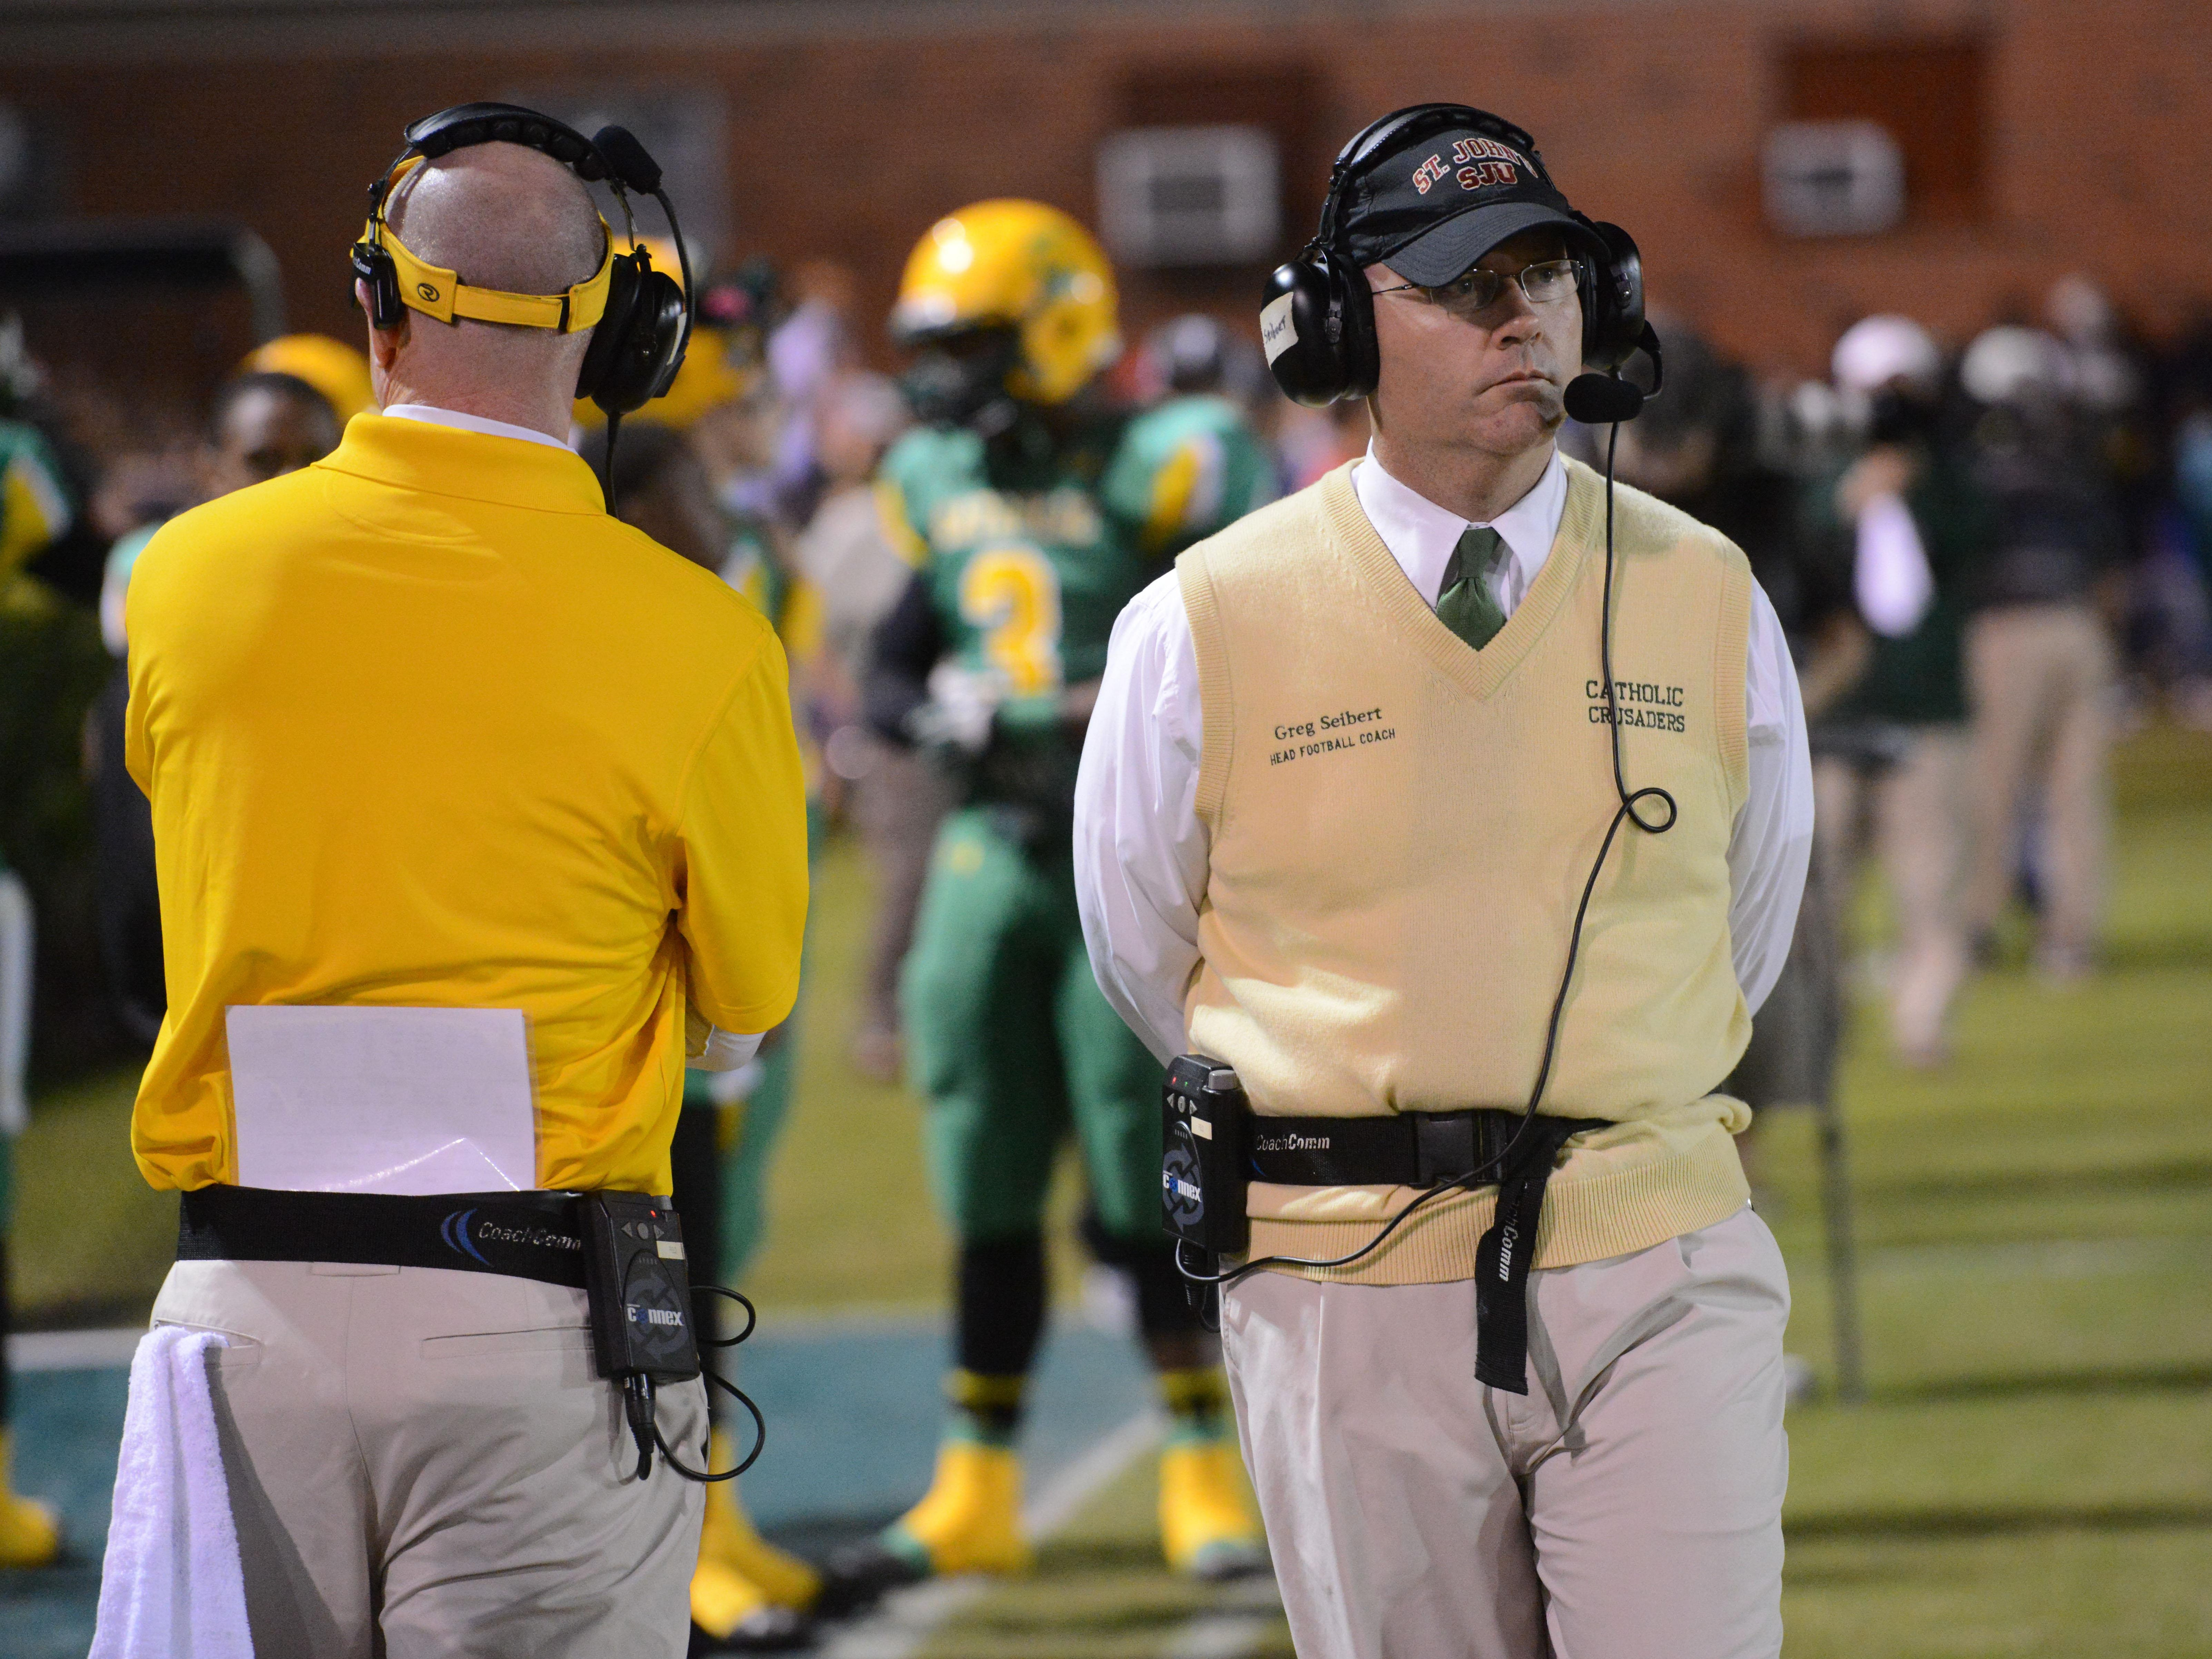 Catholic High coach Greg Seibert watches calmly from the sidelines Friday night during a Region 1-5A semifinal game against West Florida. Seibert is looking for some health and depth as the Crusaders try to build on last year's playoff team.